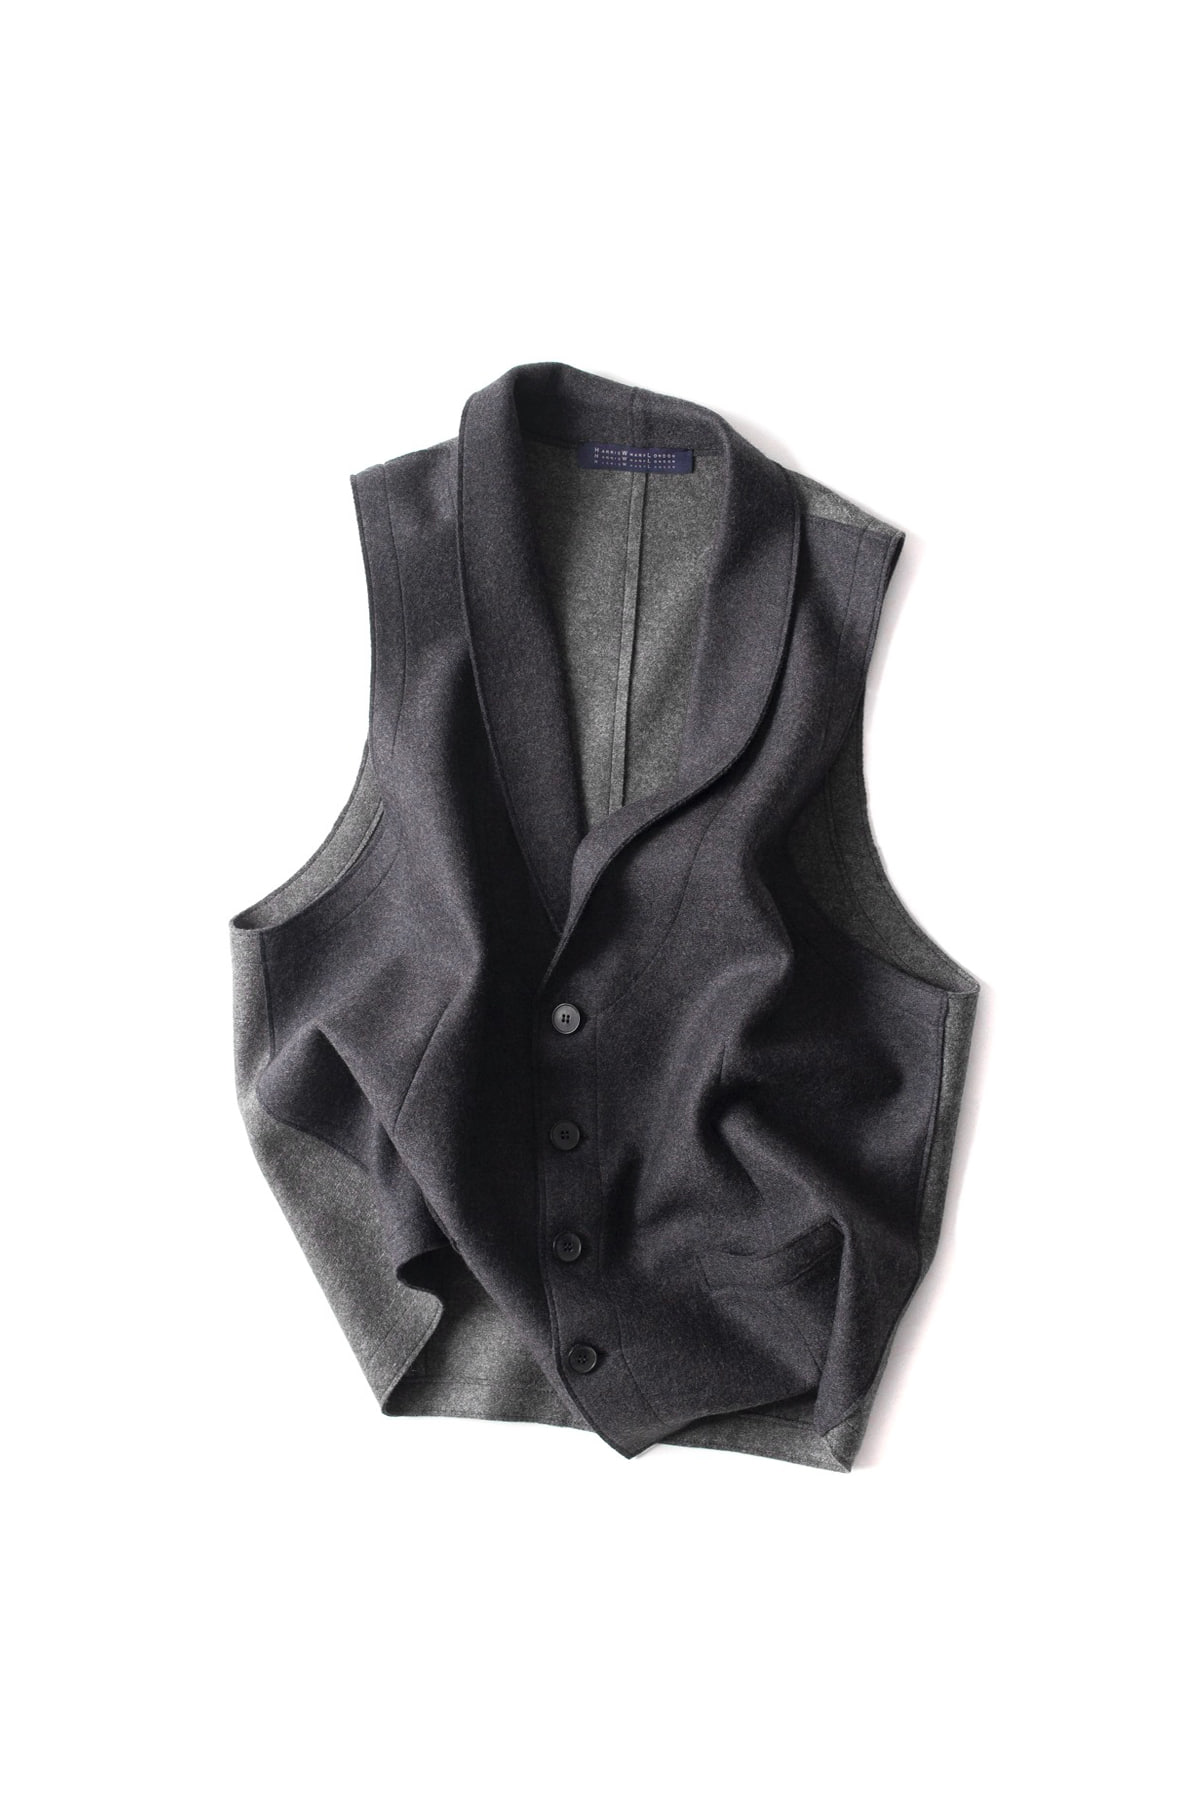 Harris Wharf London : Blcolour Light Waist Coat (Charcoal)